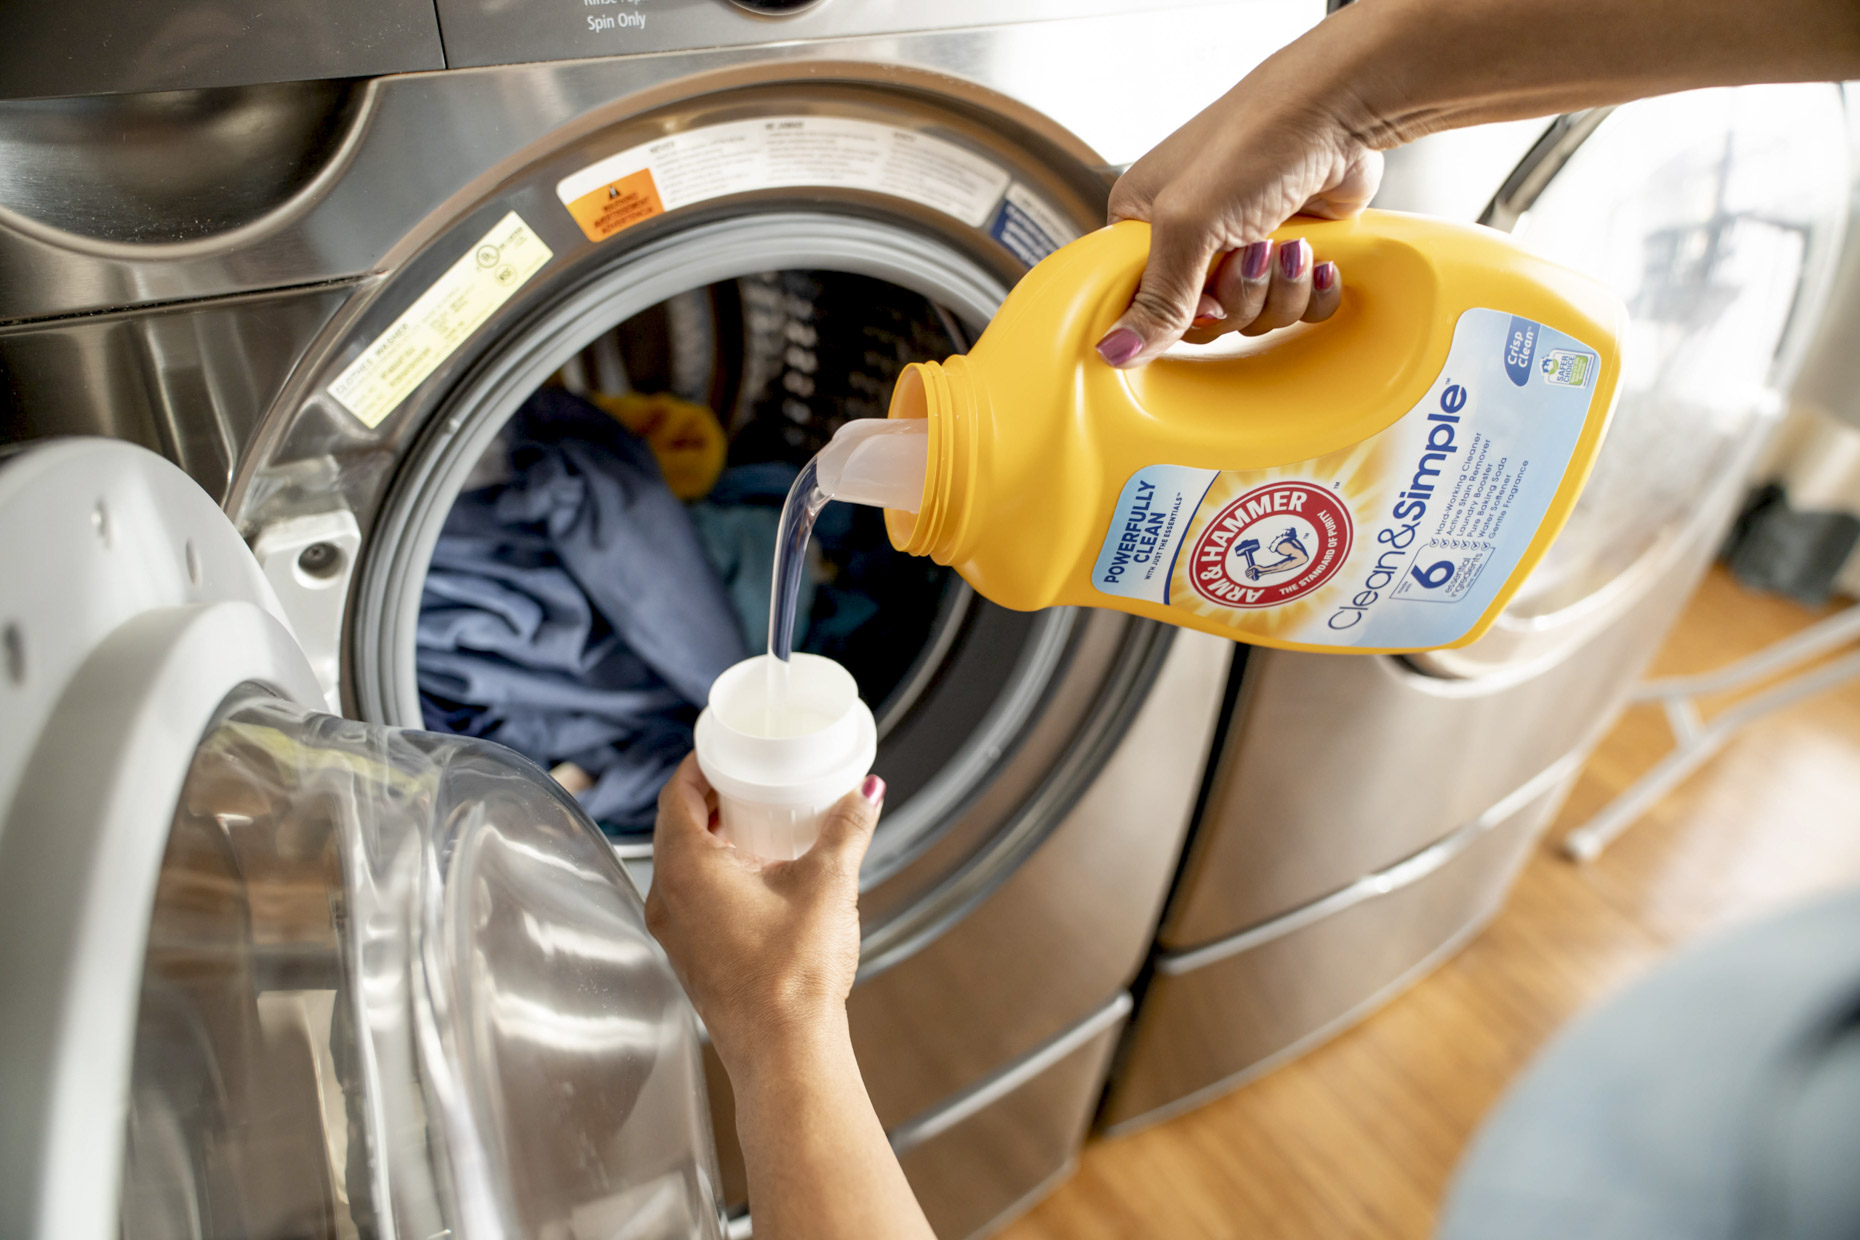 Woman pouring Arm and Hammer laundry detergent by washer